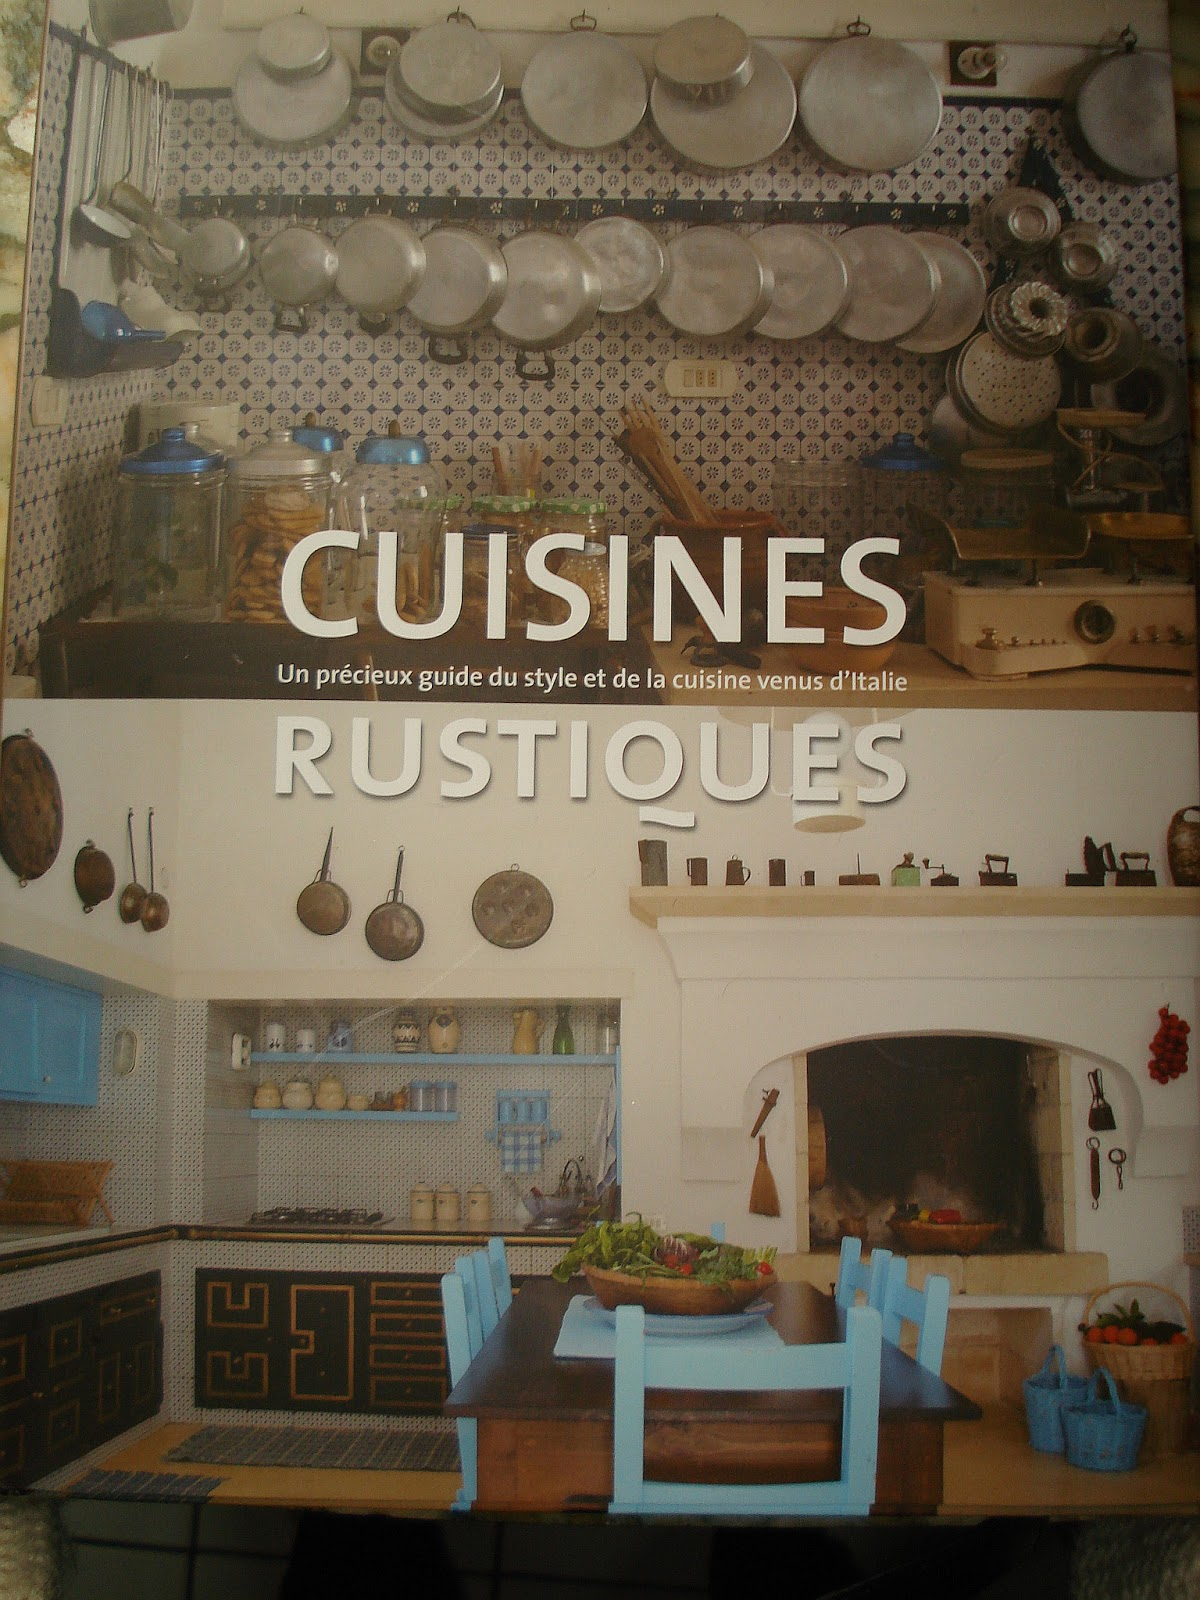 Cuisine campagne chic 12 jpg 1200 1600 kitchen books for Cuisine campagne chic